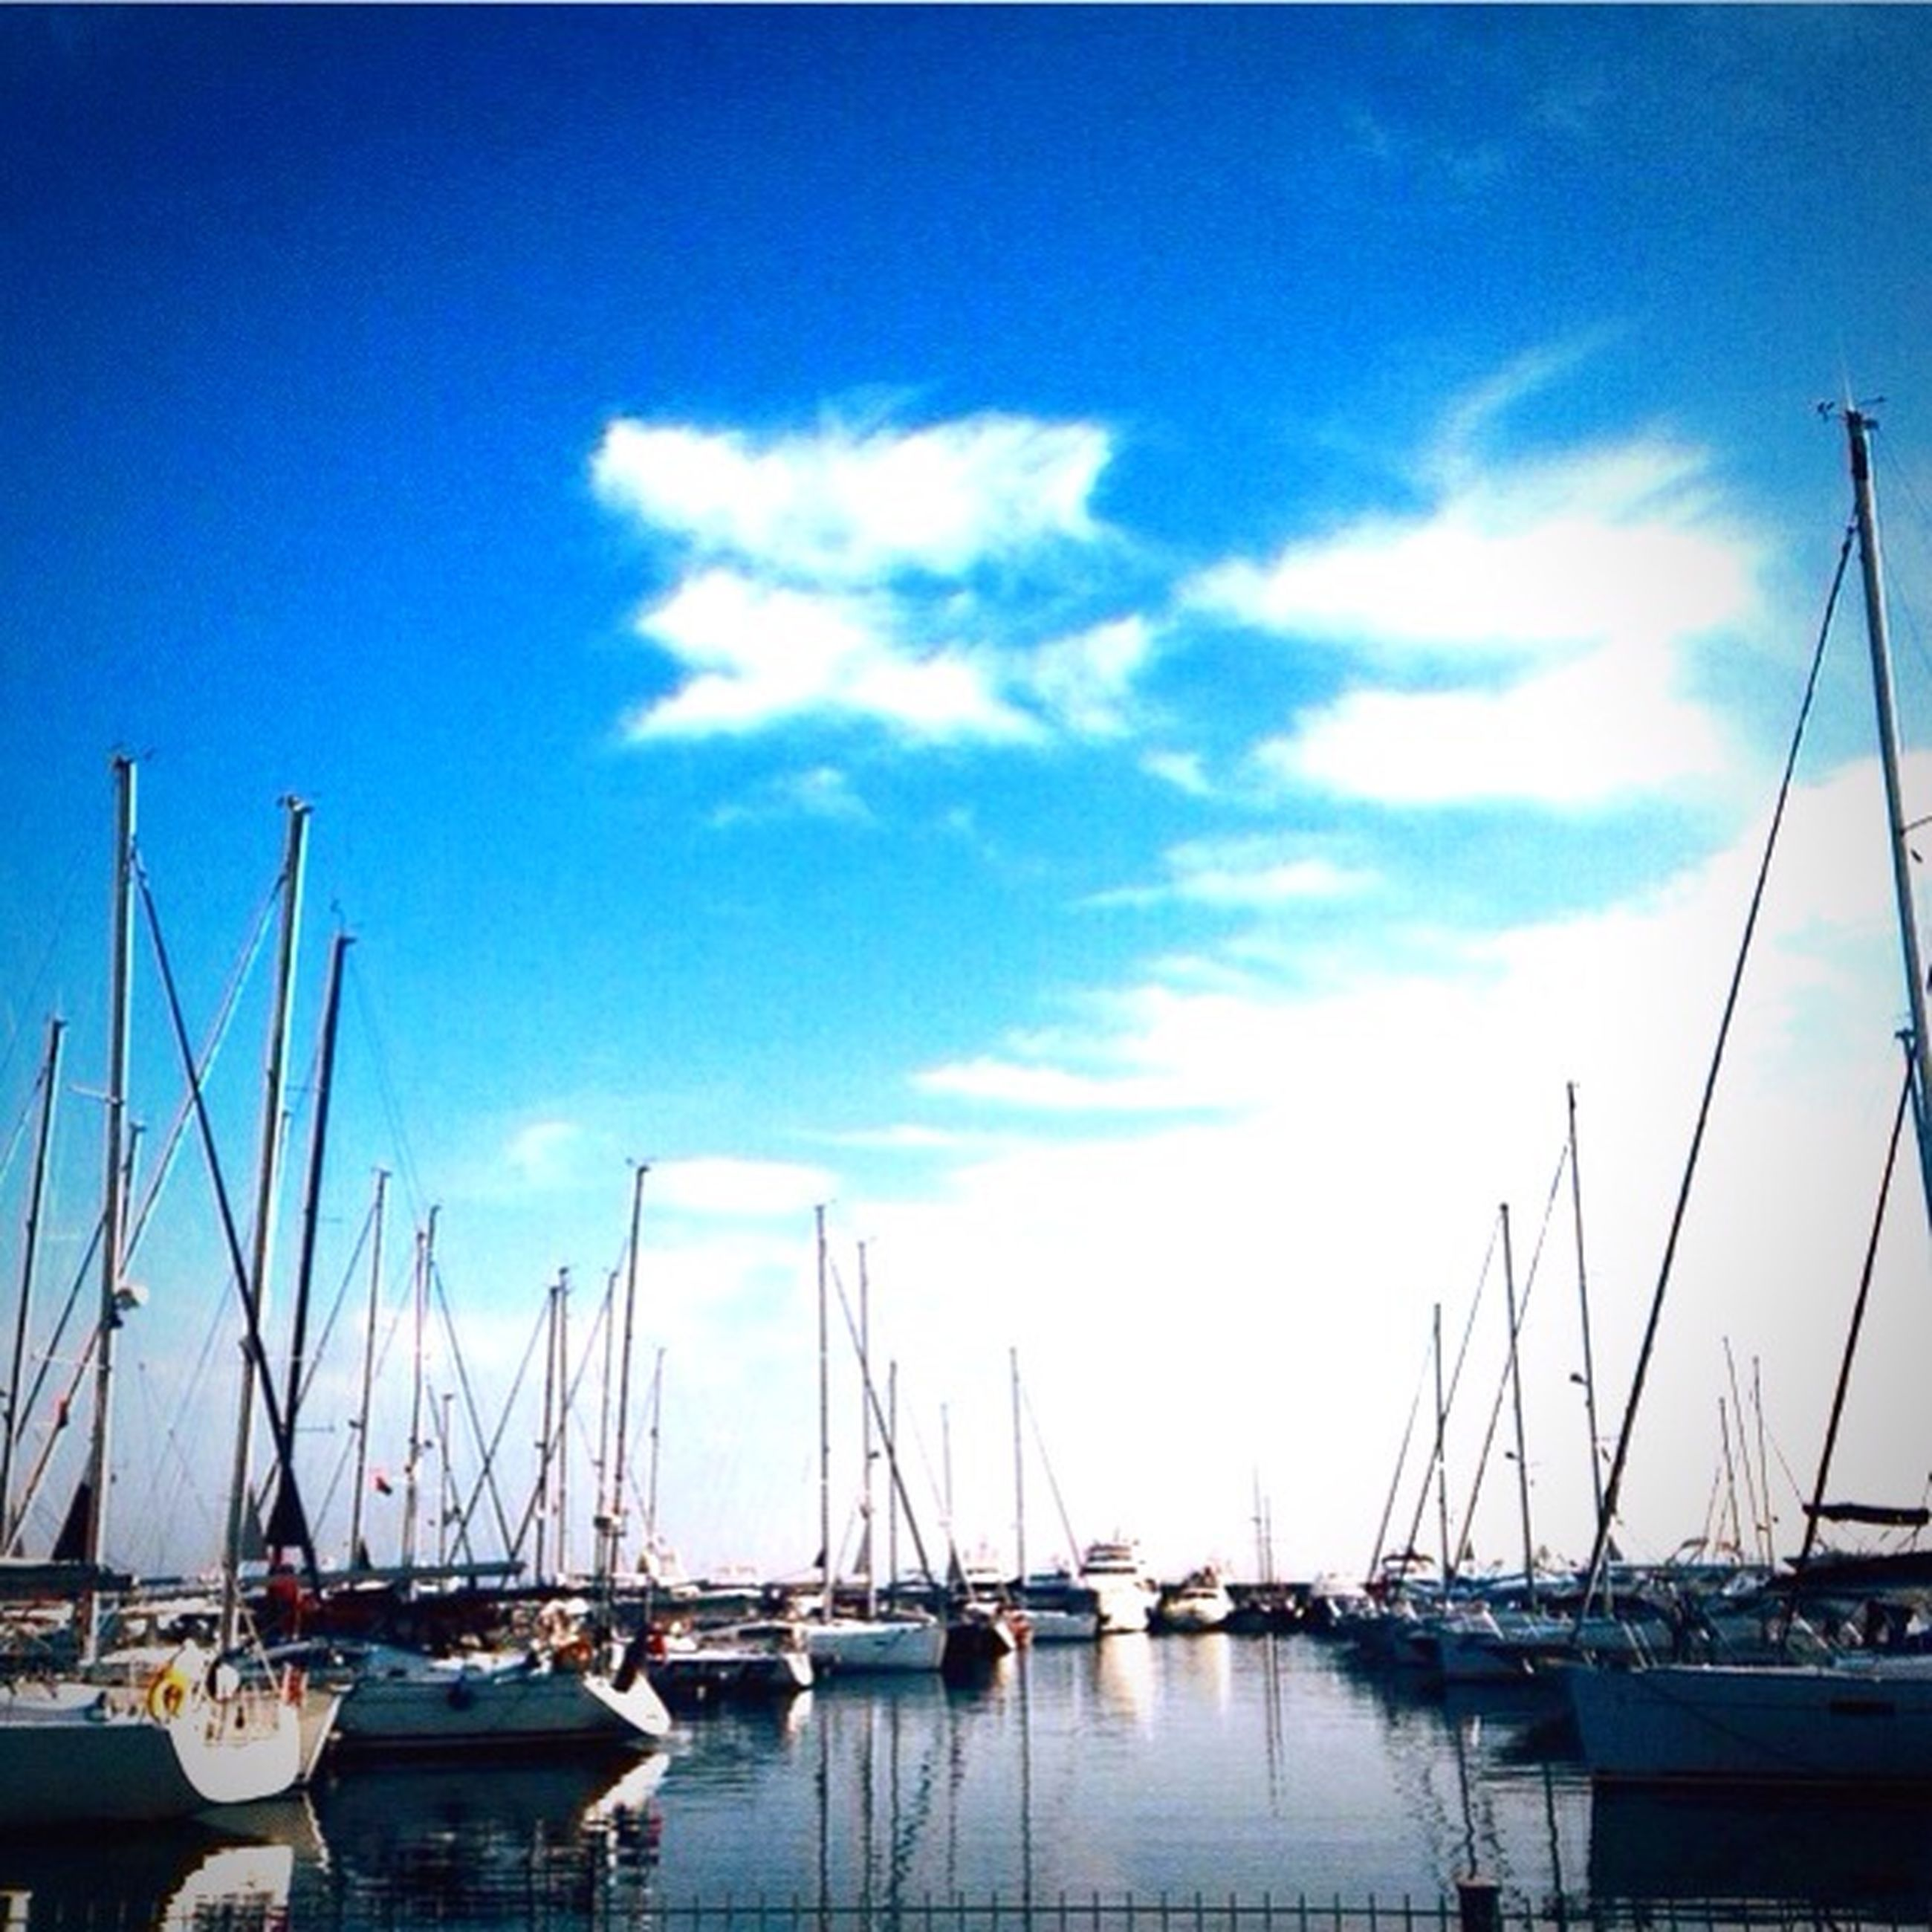 nautical vessel, moored, transportation, water, boat, mast, mode of transport, harbor, sailboat, sky, sea, waterfront, blue, reflection, marina, cloud, cloud - sky, nature, outdoors, tranquility